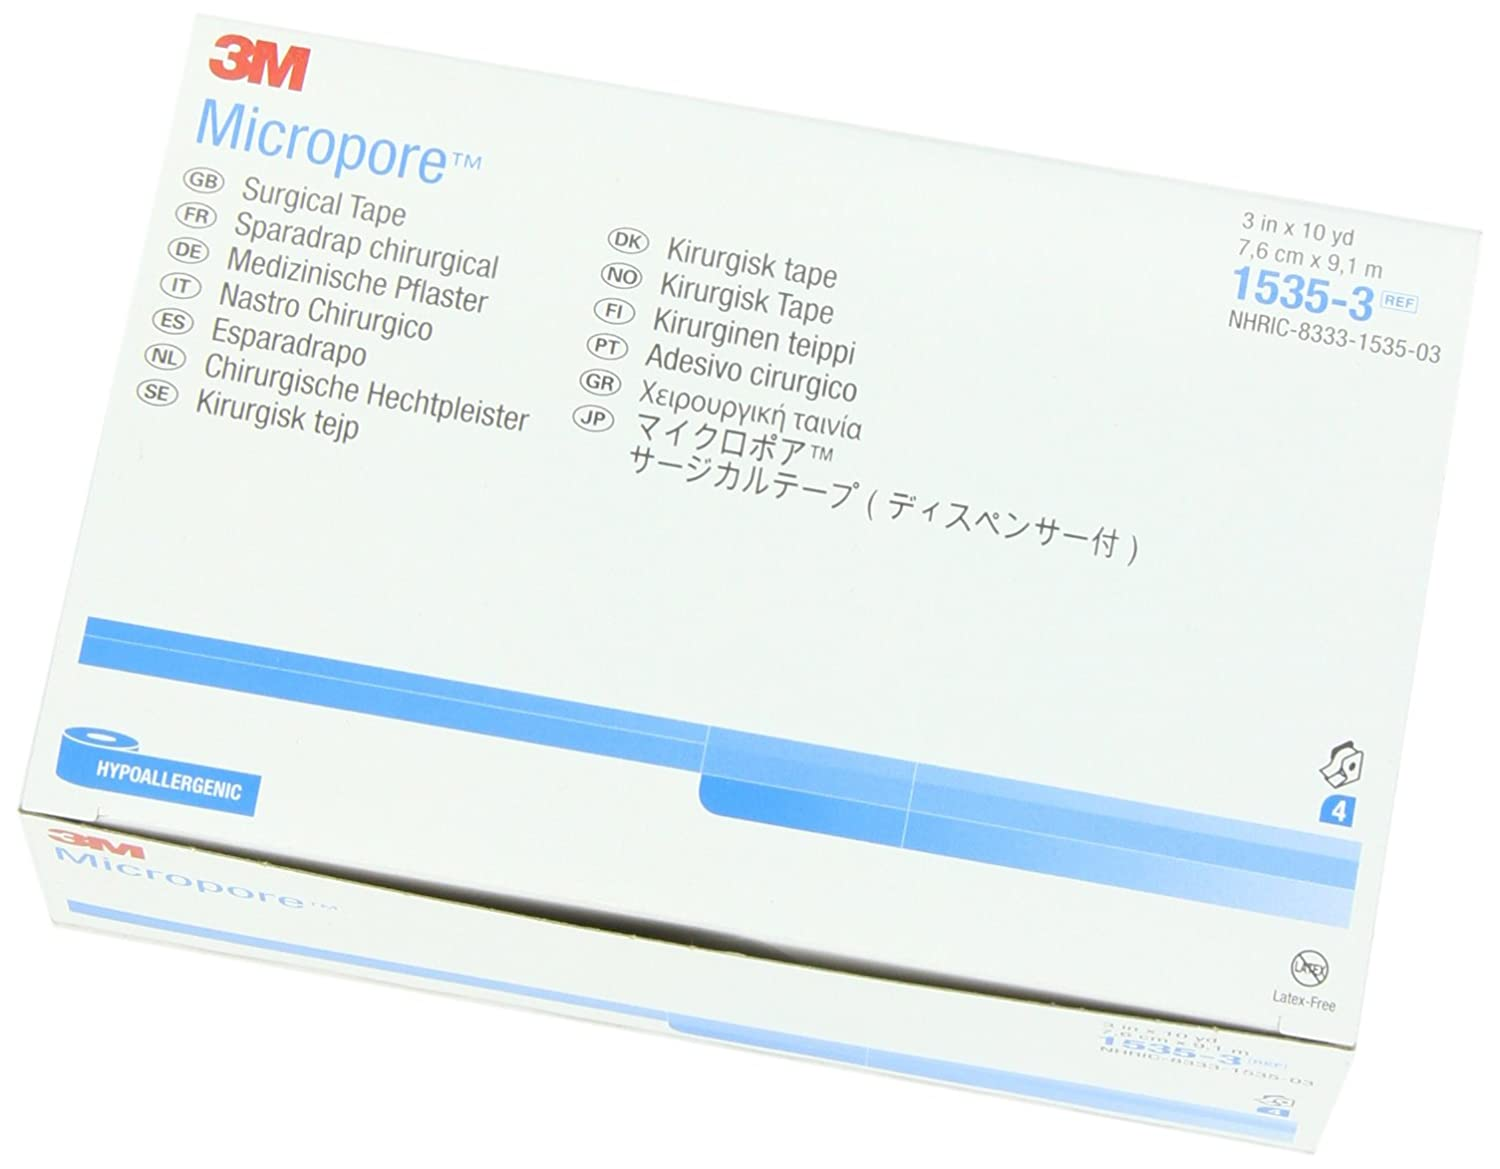 3M 1535-3 Micropore Medical Tape (Pack of 4)